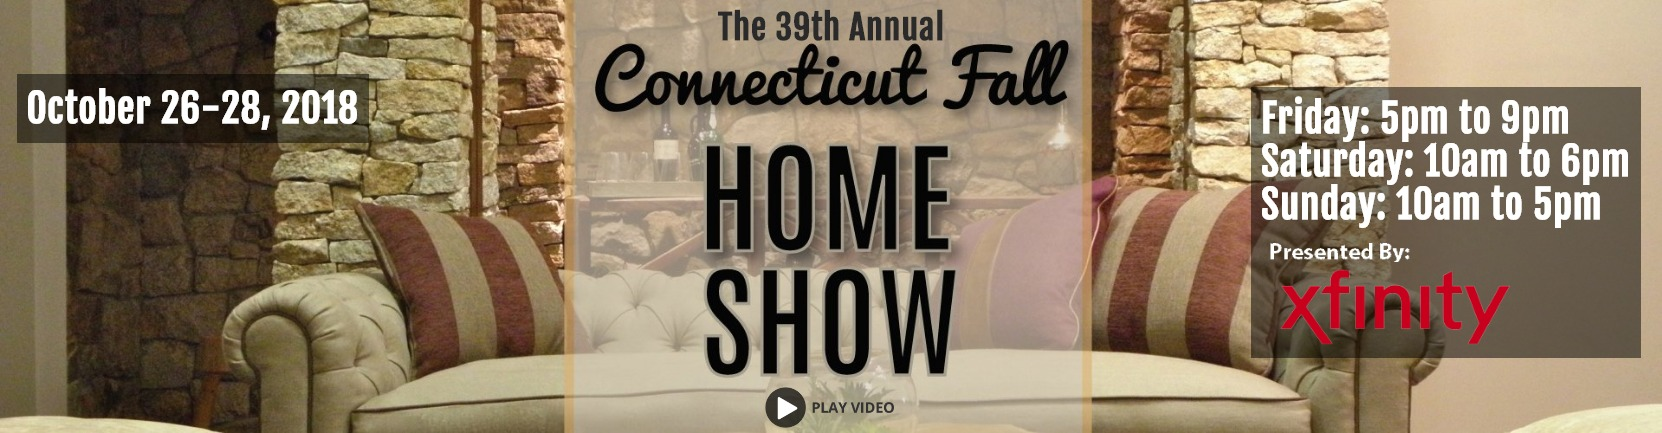 Fall CT Home Show 2018 - Connecticut Home Expo | Jenks Productions